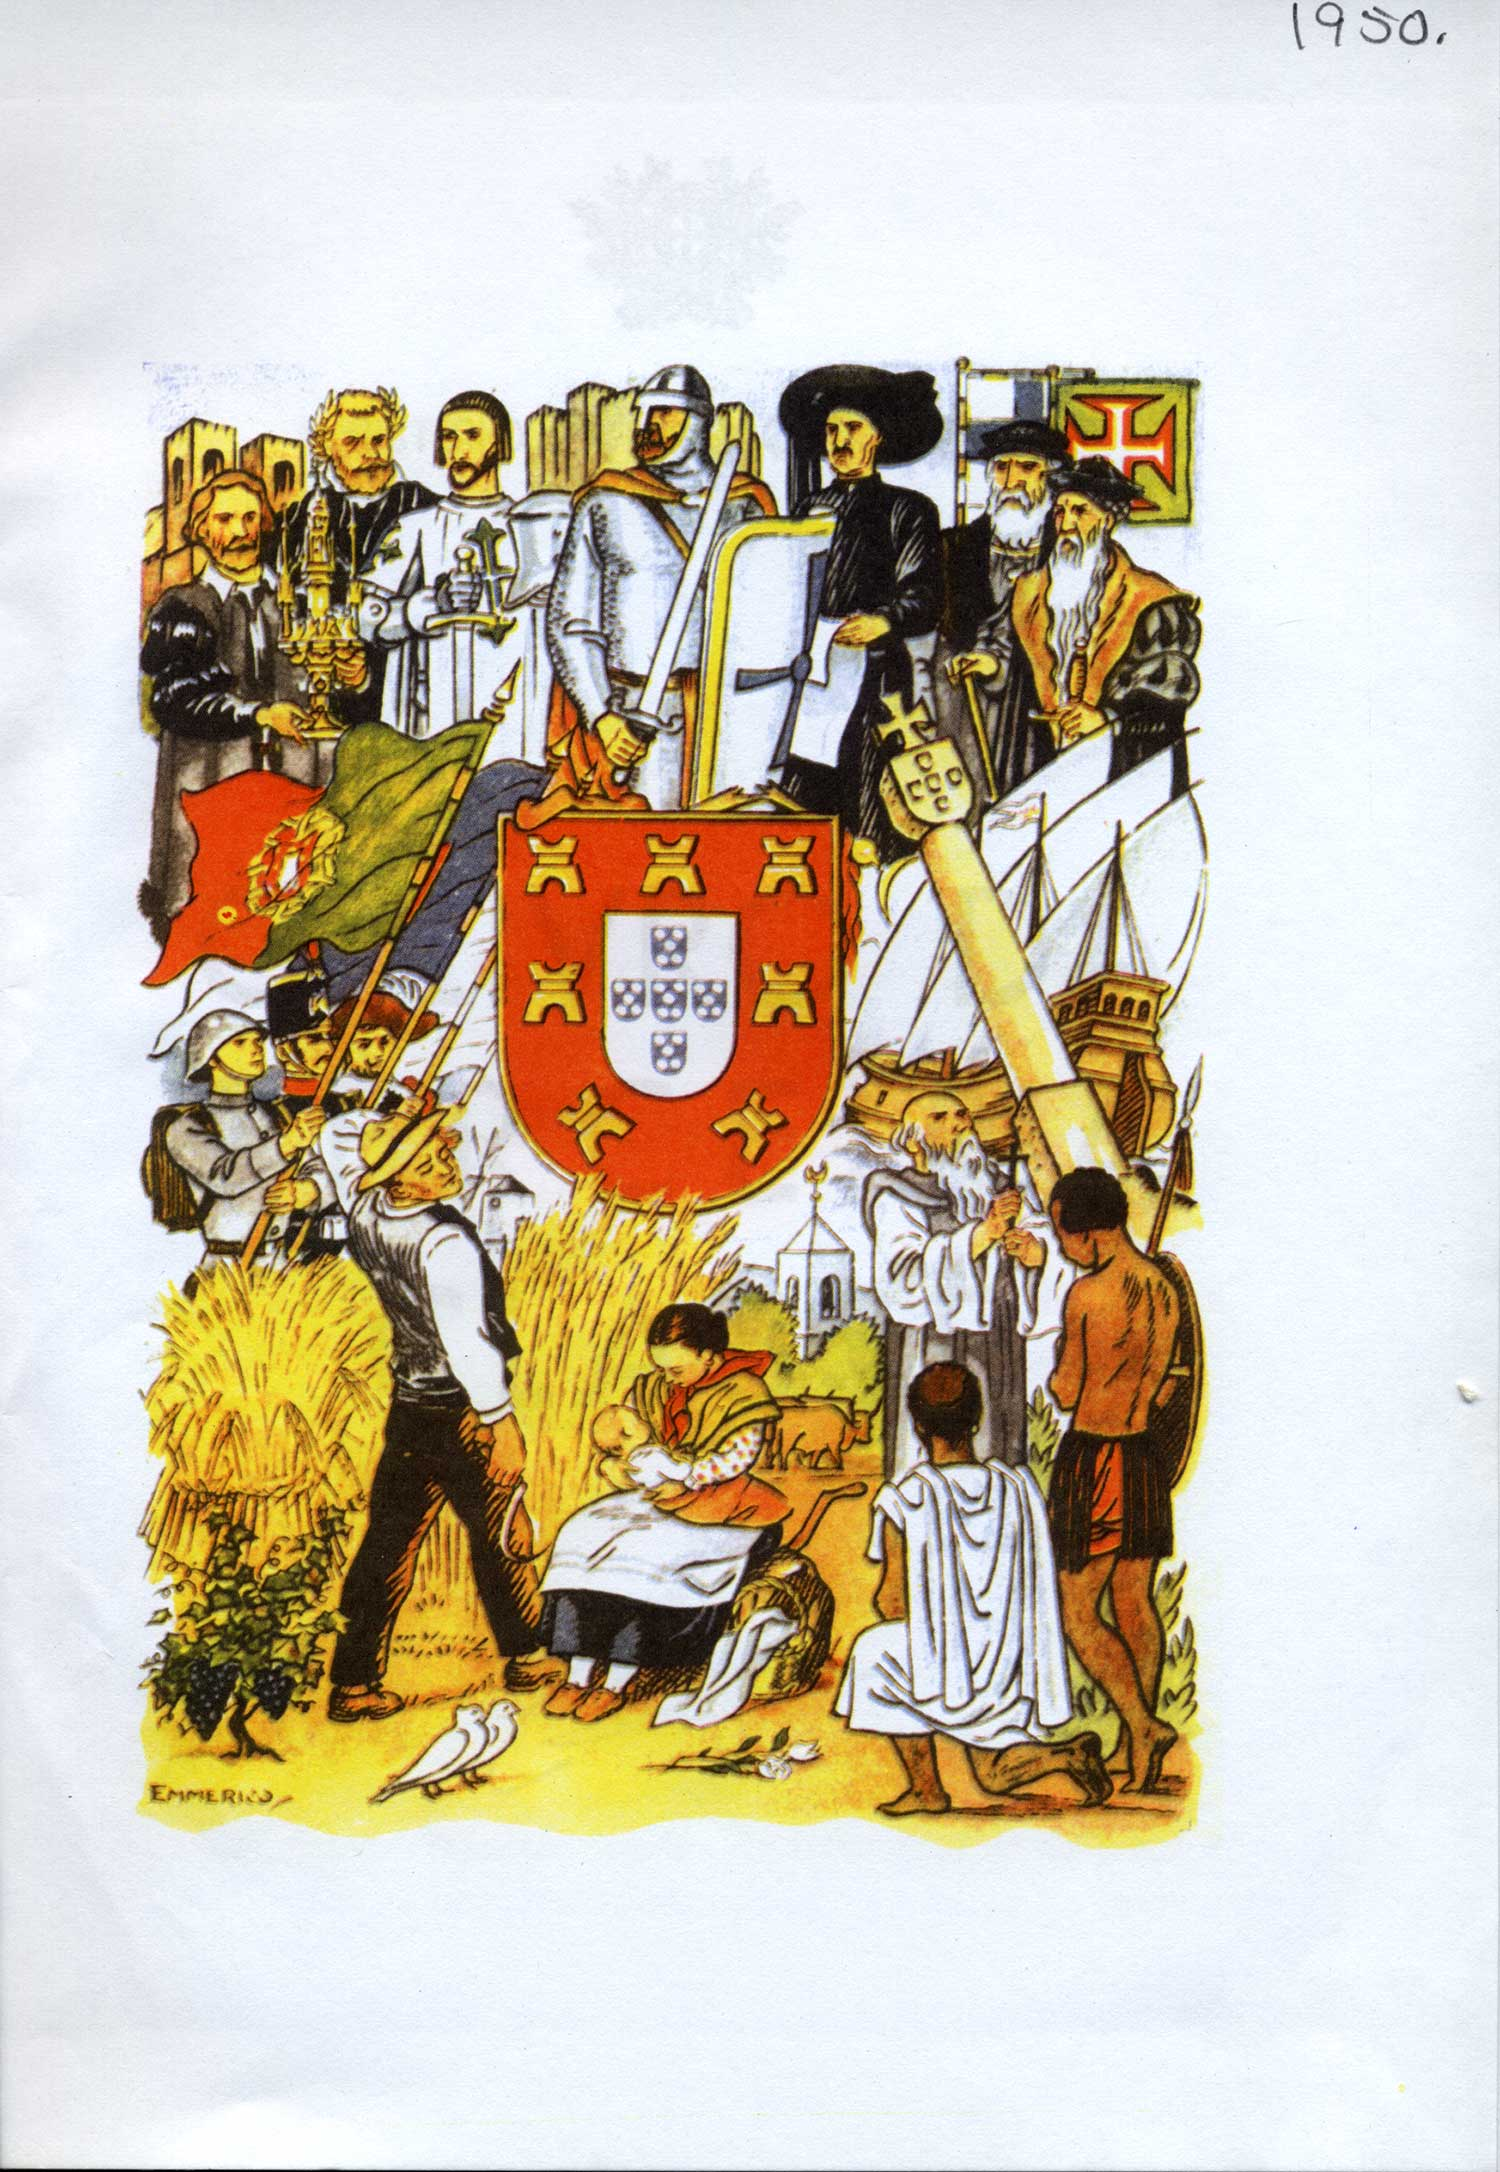 The imagery of the New State mythologizes an ancient Portuguese empire and its heroes, recycling the image of a powerful race that would lead Portugal into a successful future including an overseas empire.